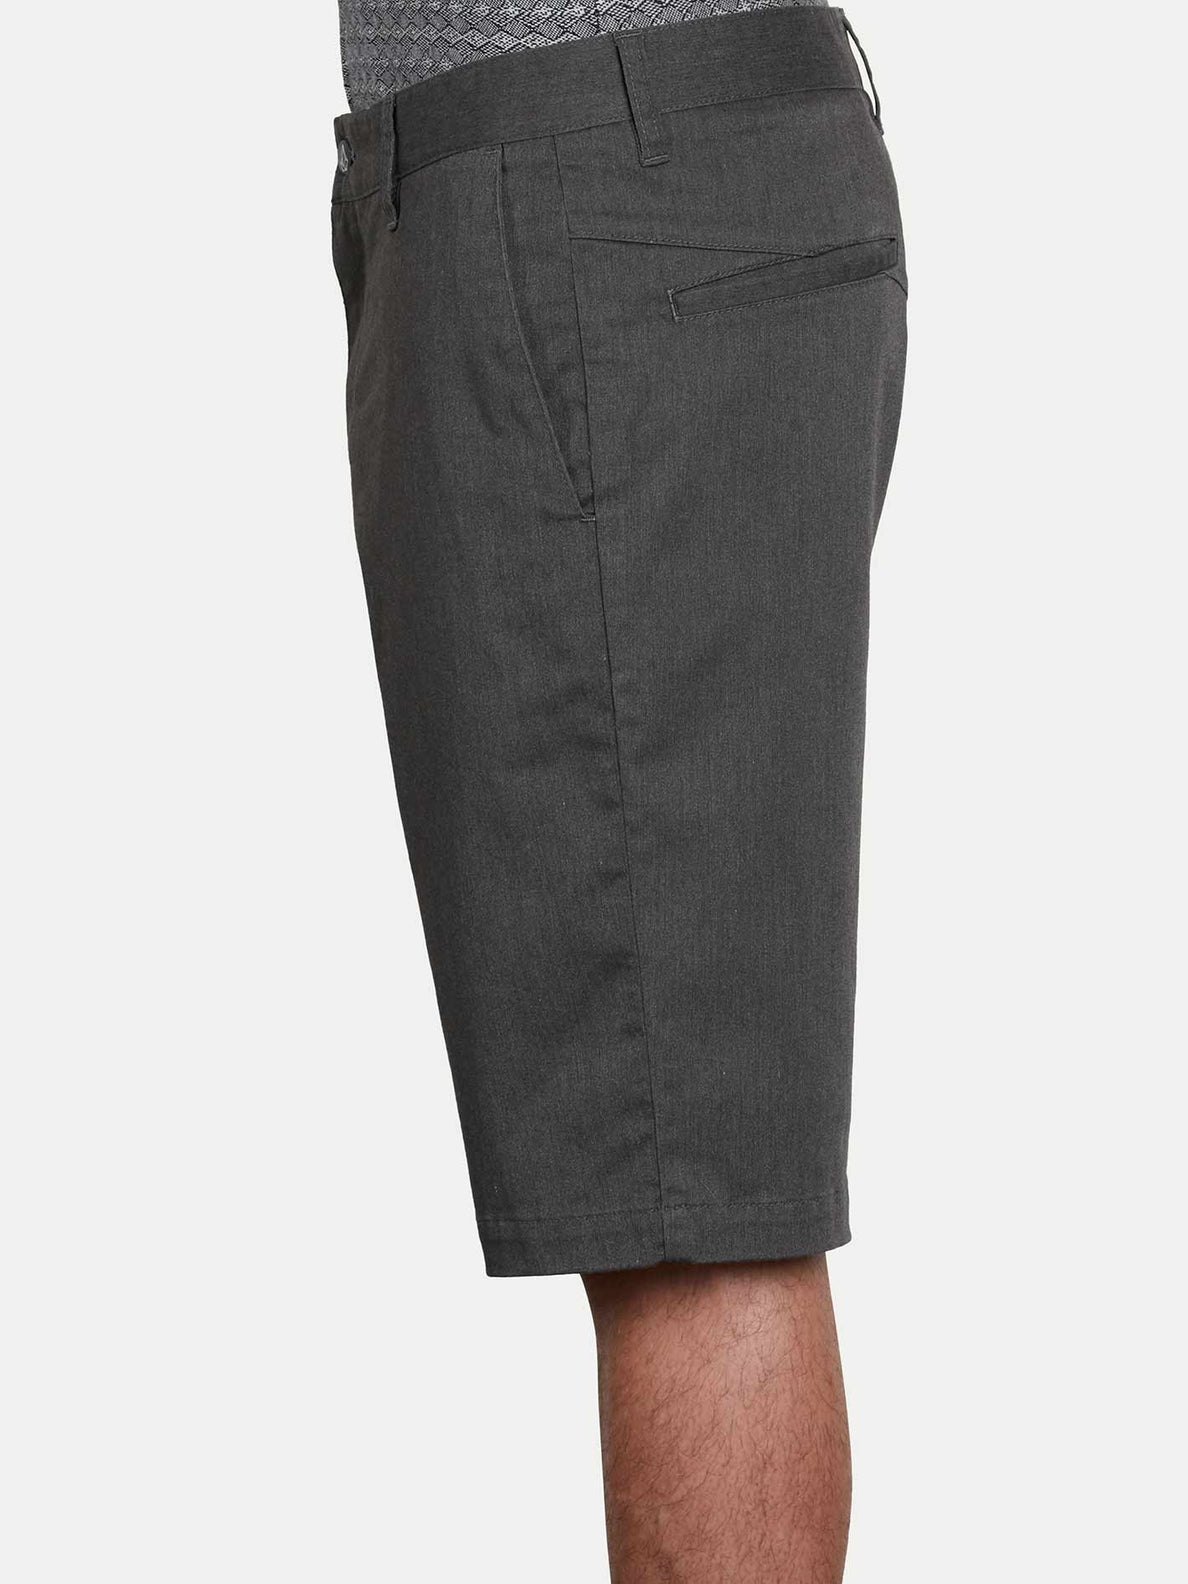 Vmonty Stretch Shorts - Charcoal Heather